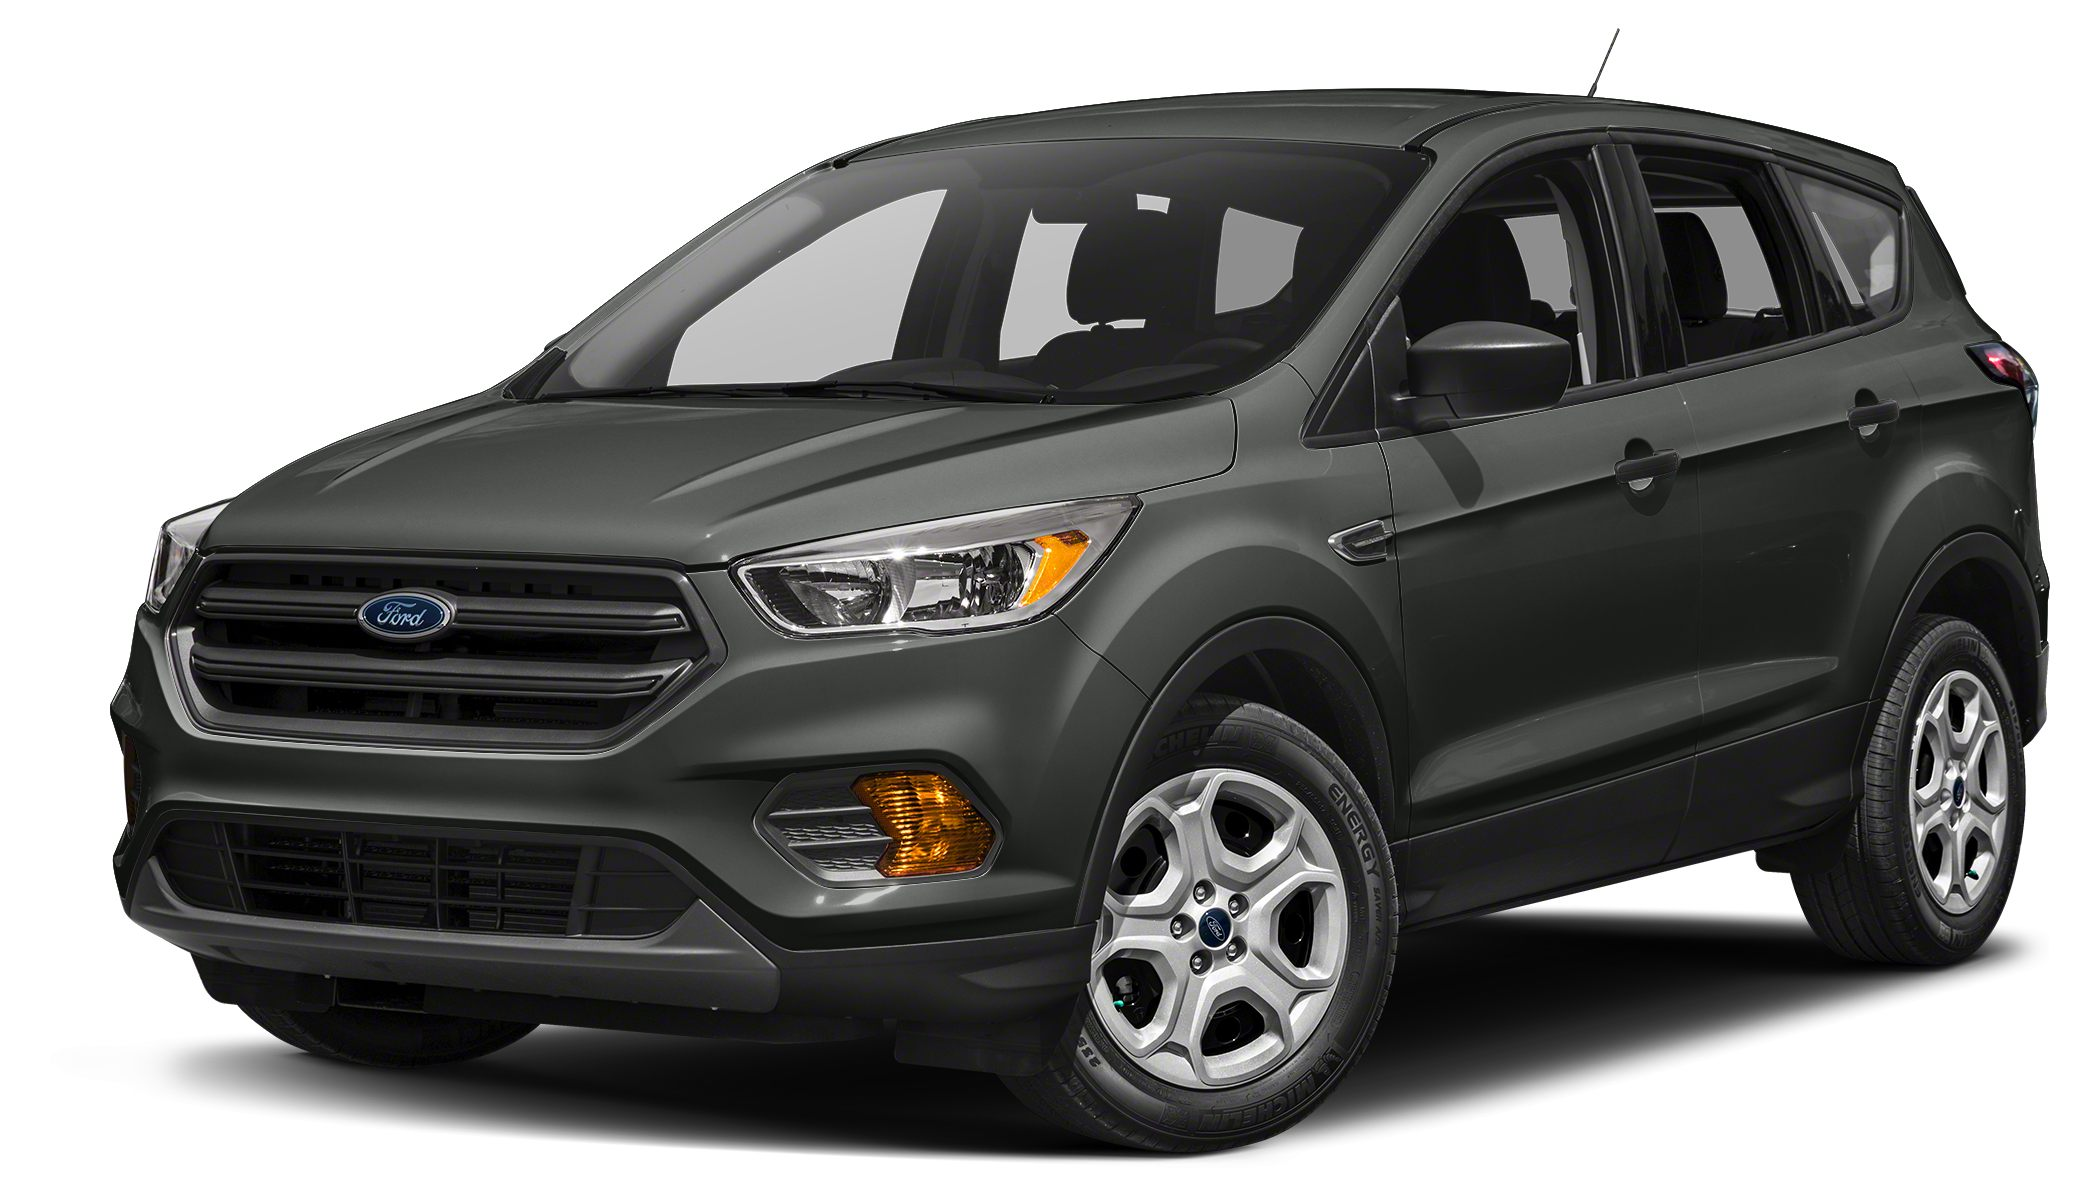 Dodge Journey Canada Value Package vs Chevrolet Equinox LS vs Ford